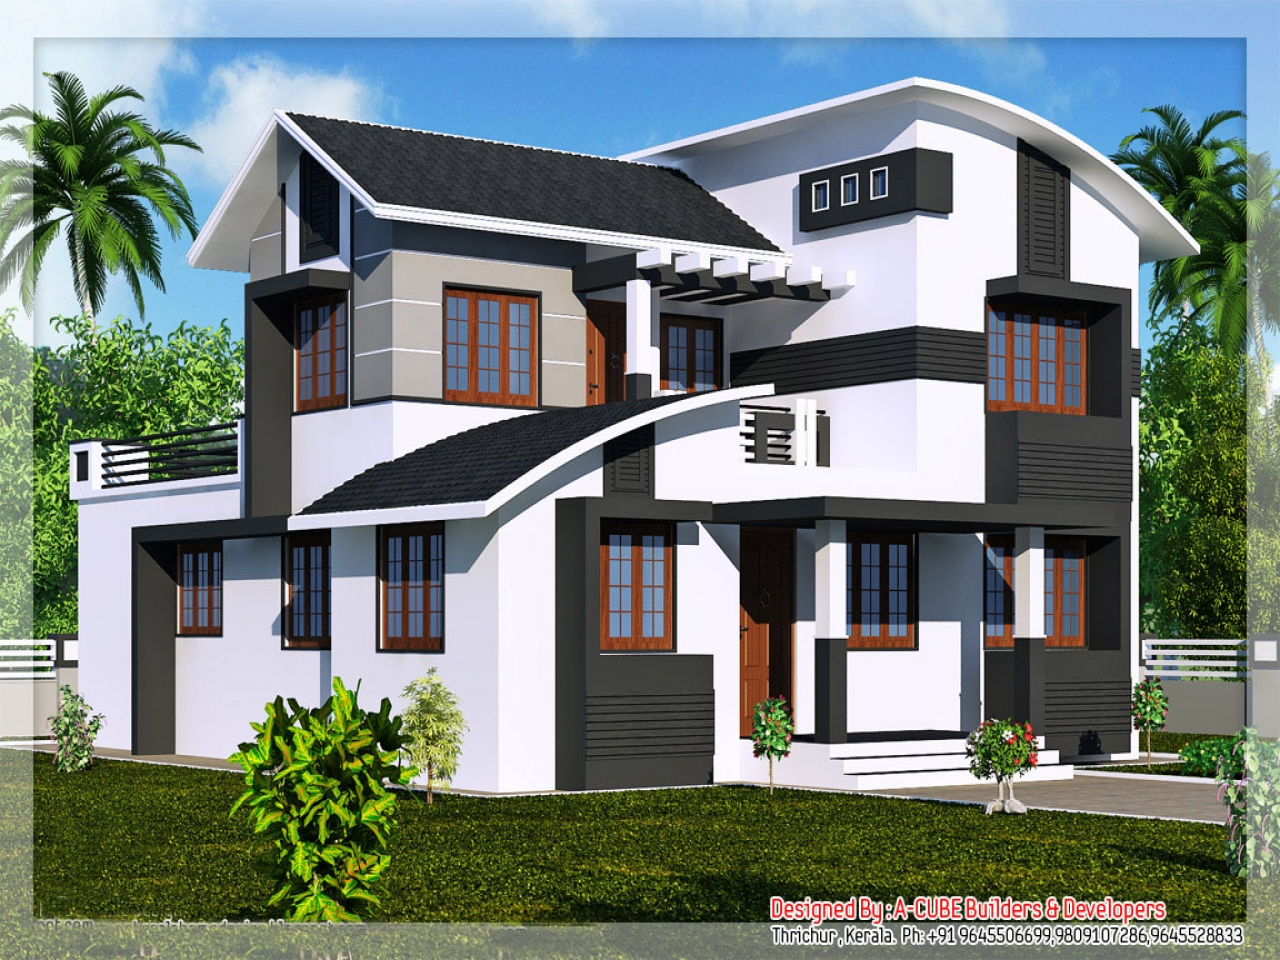 India duplex house design duplex house plans and designs for Duplex home plan design